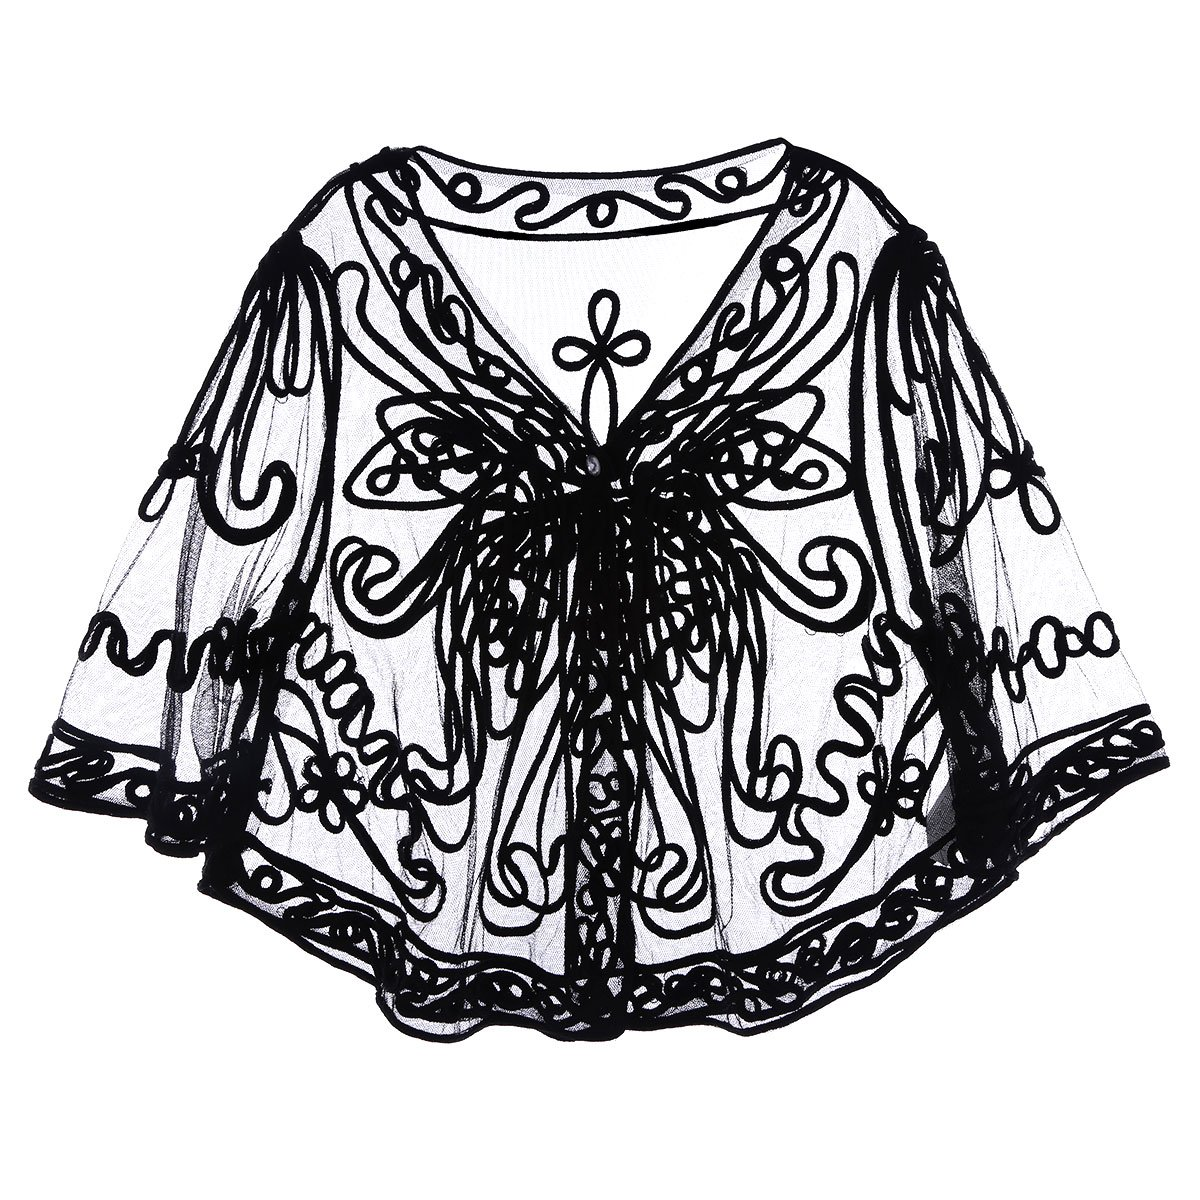 Victorian Clothing, Costumes & 1800s Fashion iiniim Womens Casual Lace Crochet Cardigan 3 4 Sleeve Sheer Cover Up Jacket Plus Size $21.95 AT vintagedancer.com